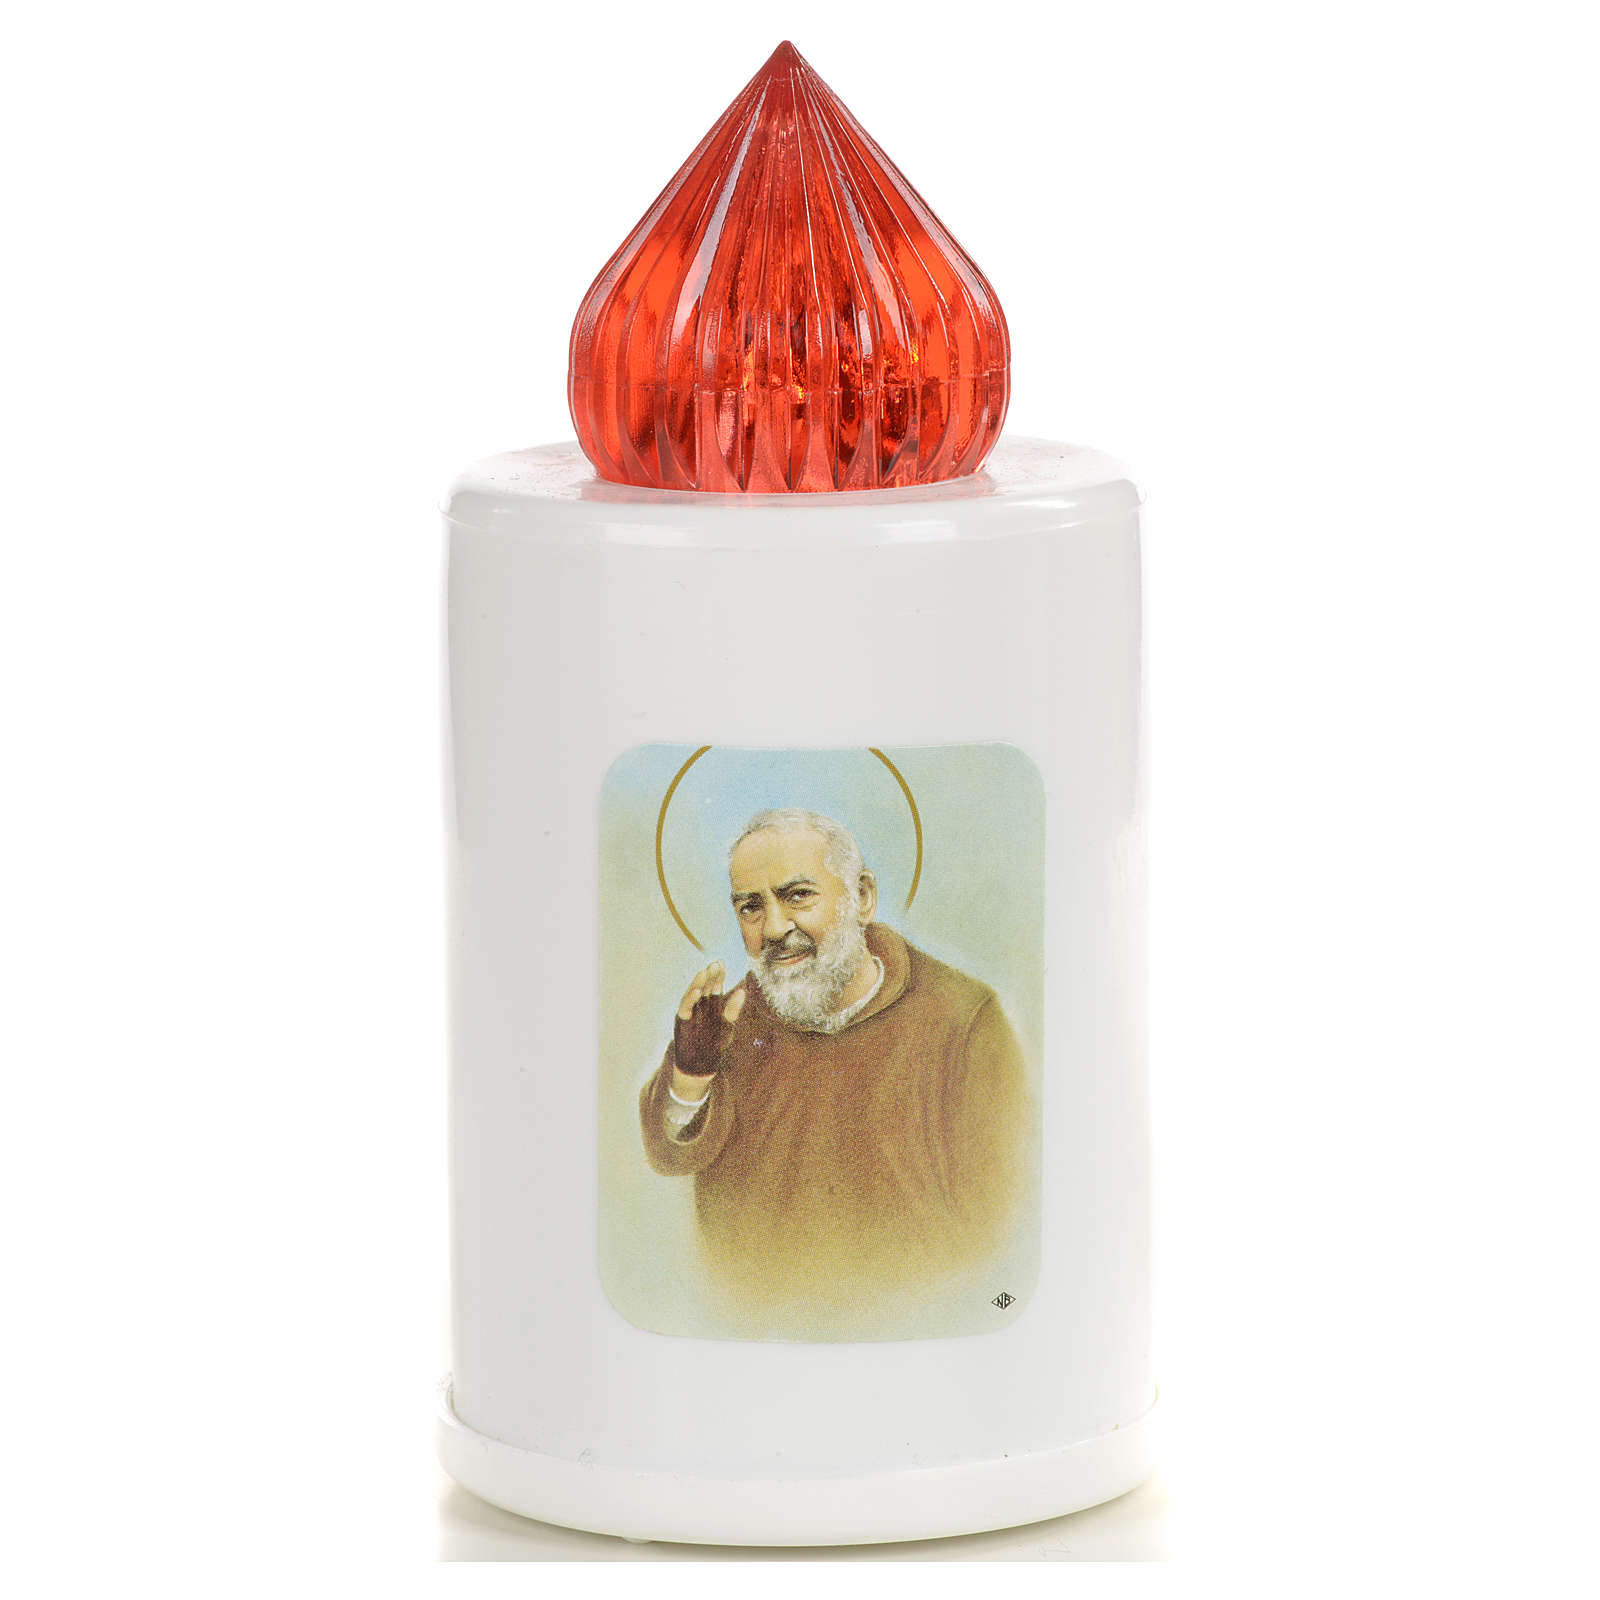 White votive candle with image, 100 days 3